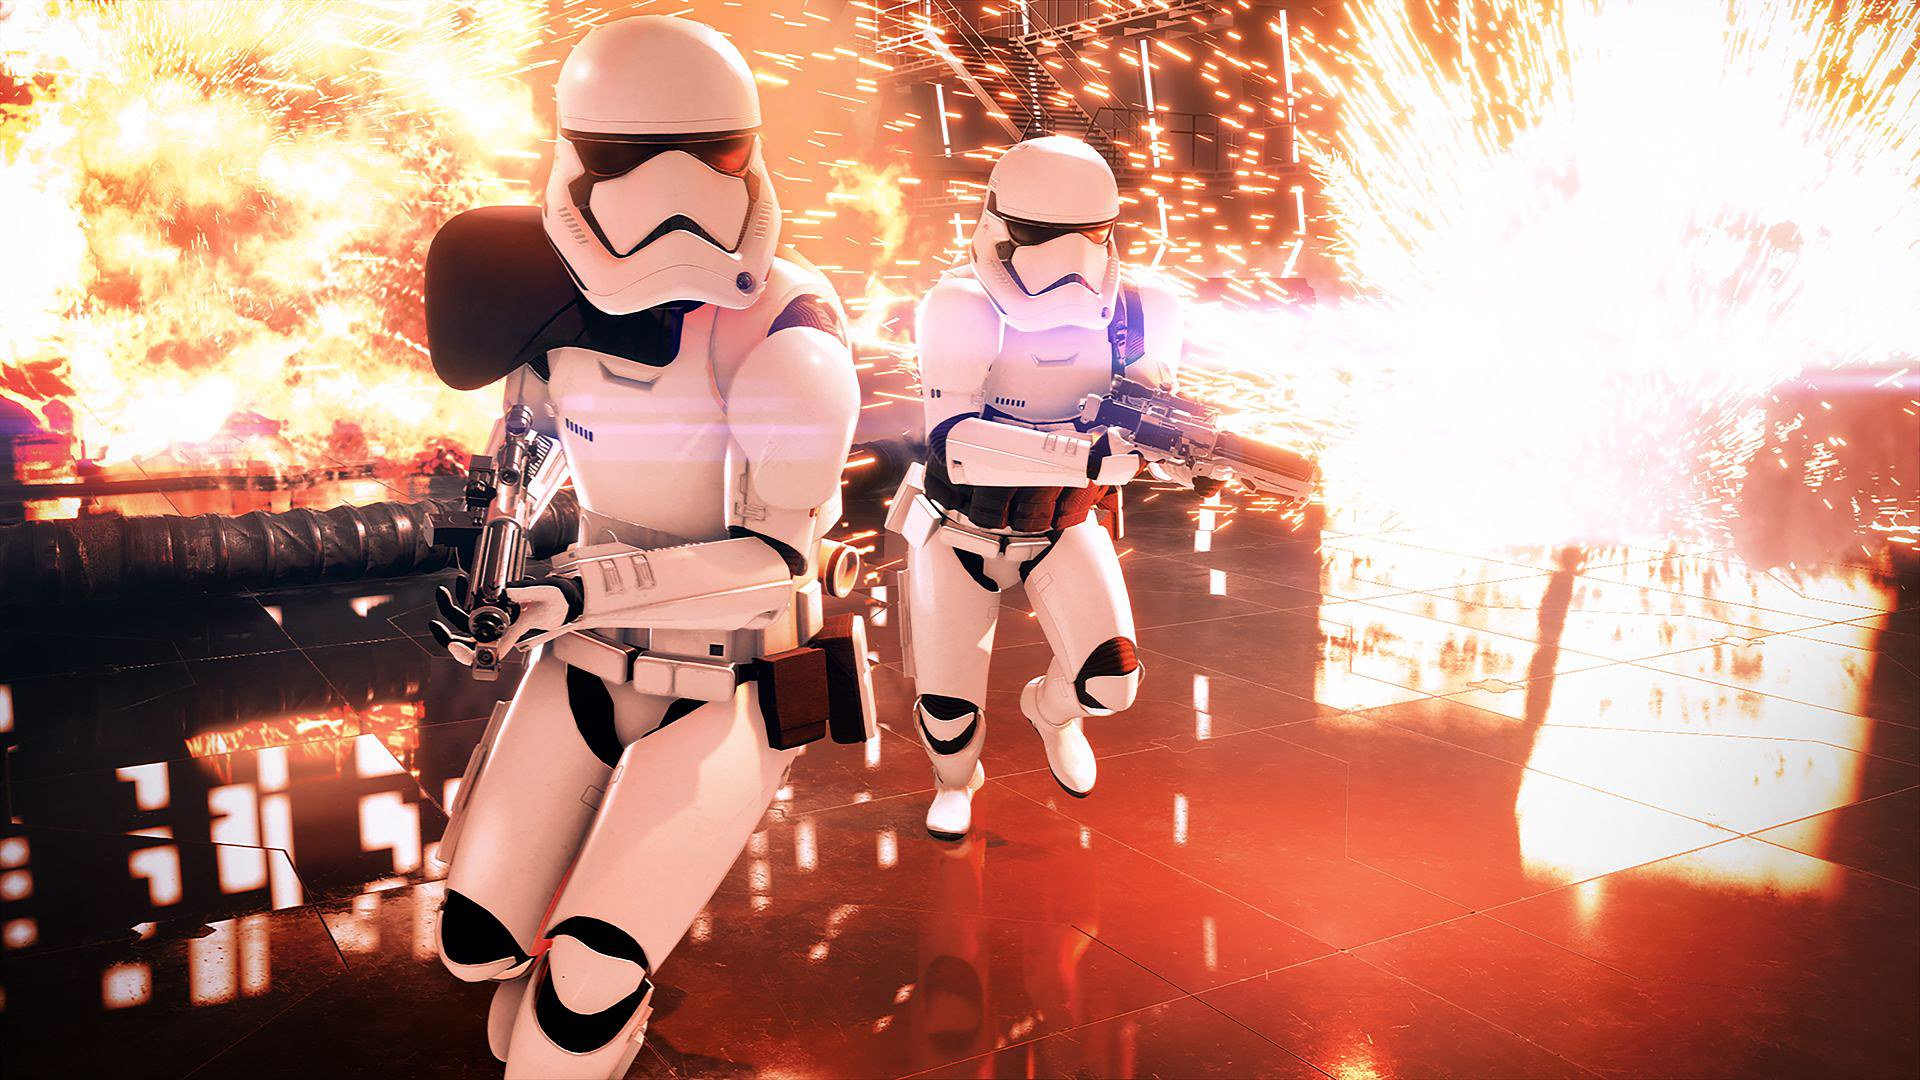 'Star Wars Battlefront II' is a great game that keeps dropping the ball https://t.co/twJ2a6FTkF https://t.co/zNEEYDRxdJ